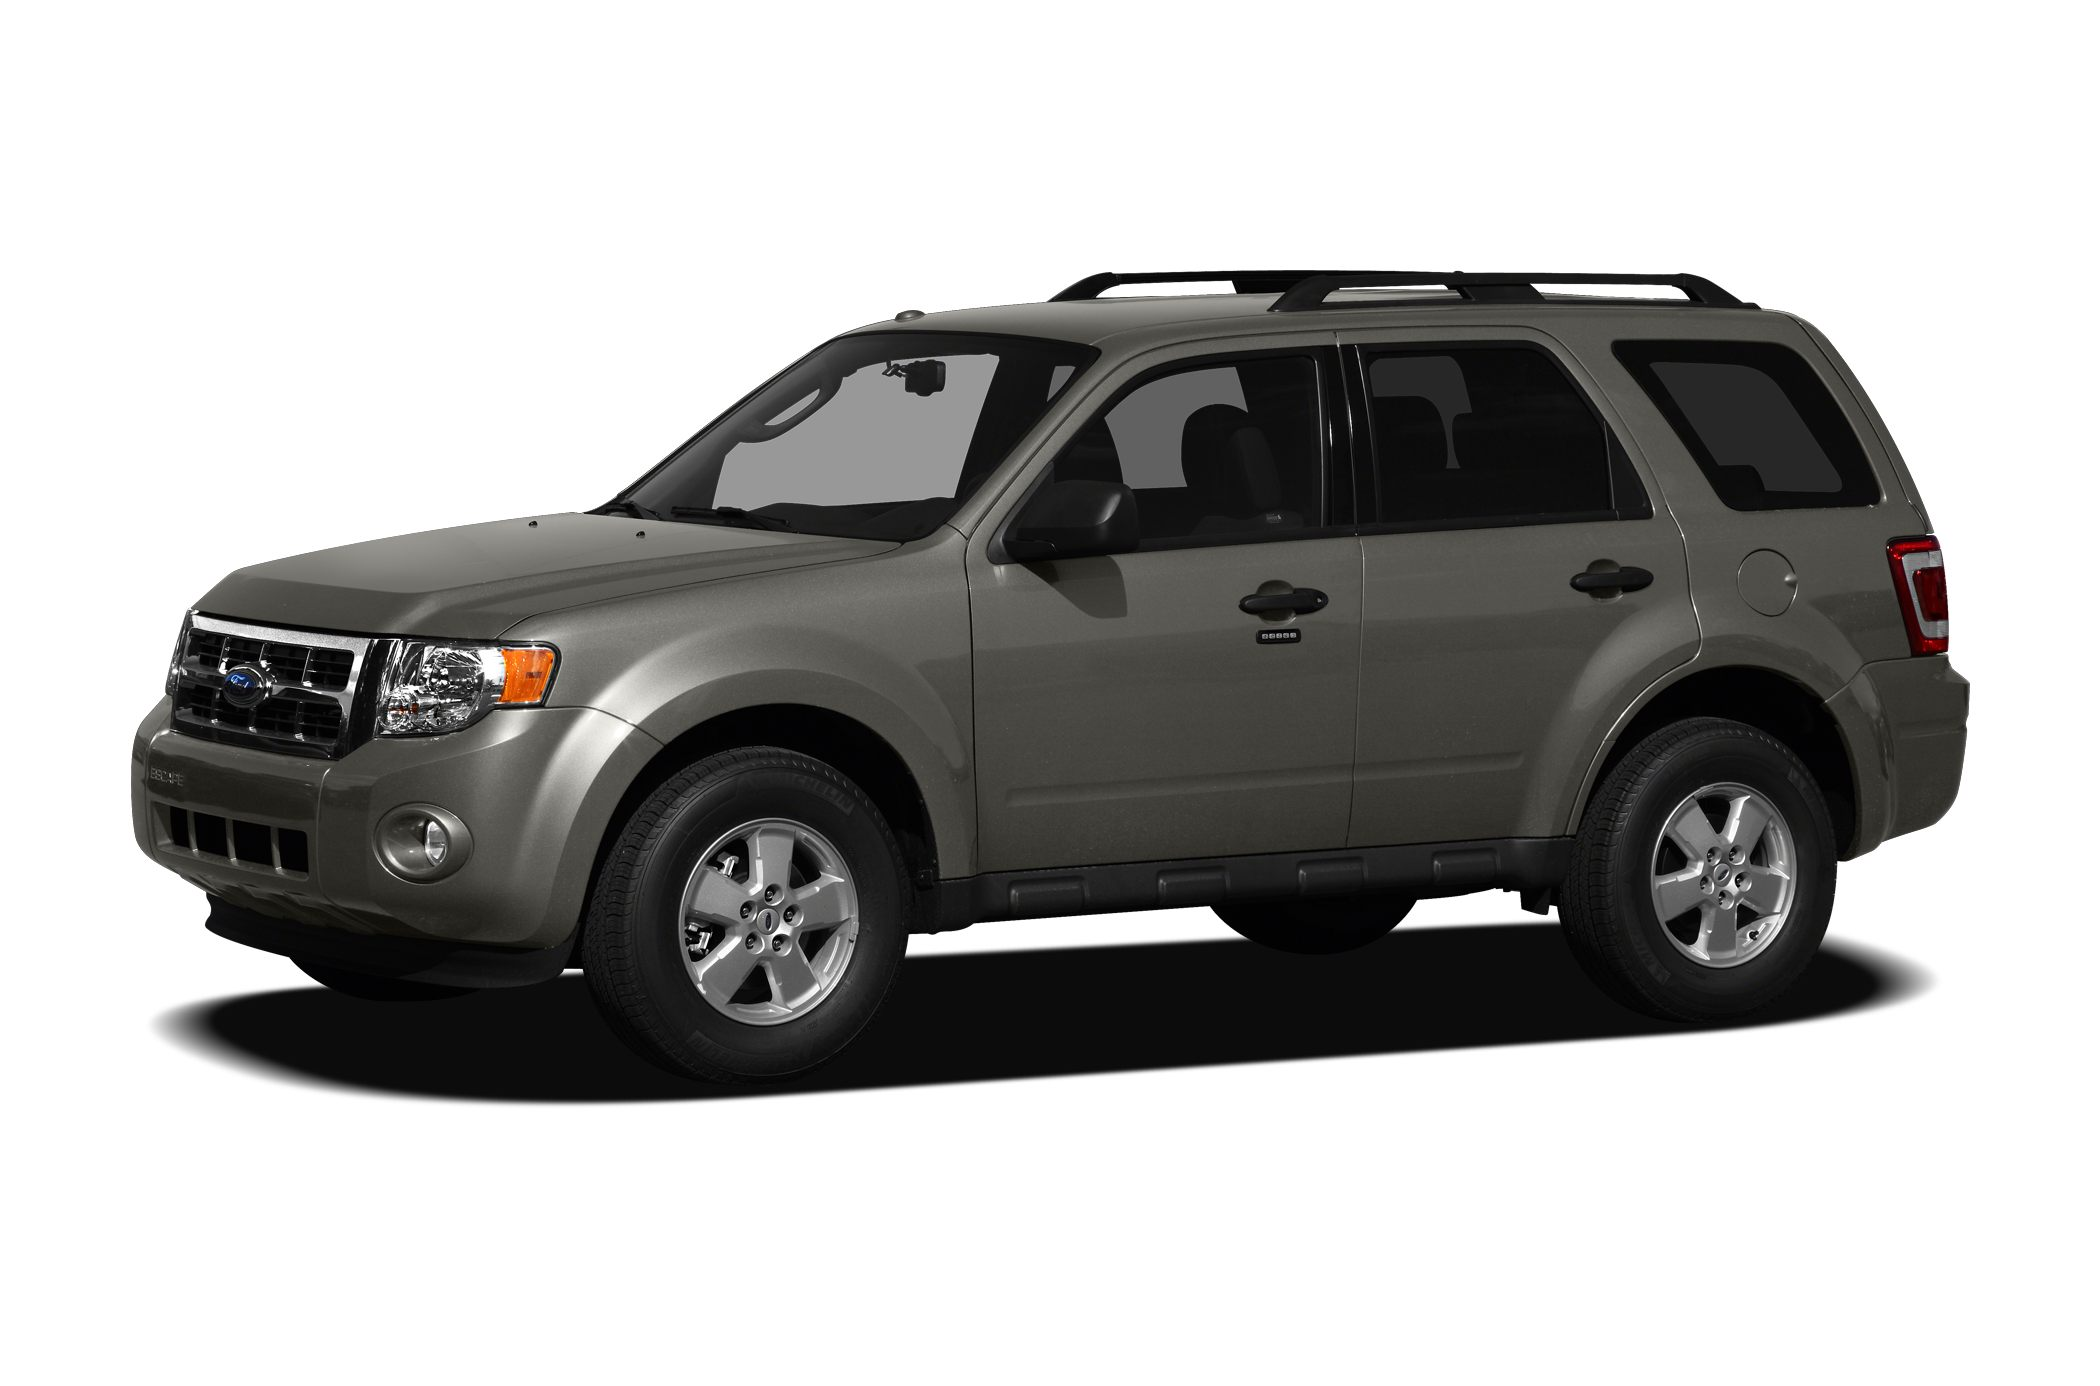 2012 Ford Escape Limited SUV for sale in San Angelo for $20,777 with 36,583 miles.